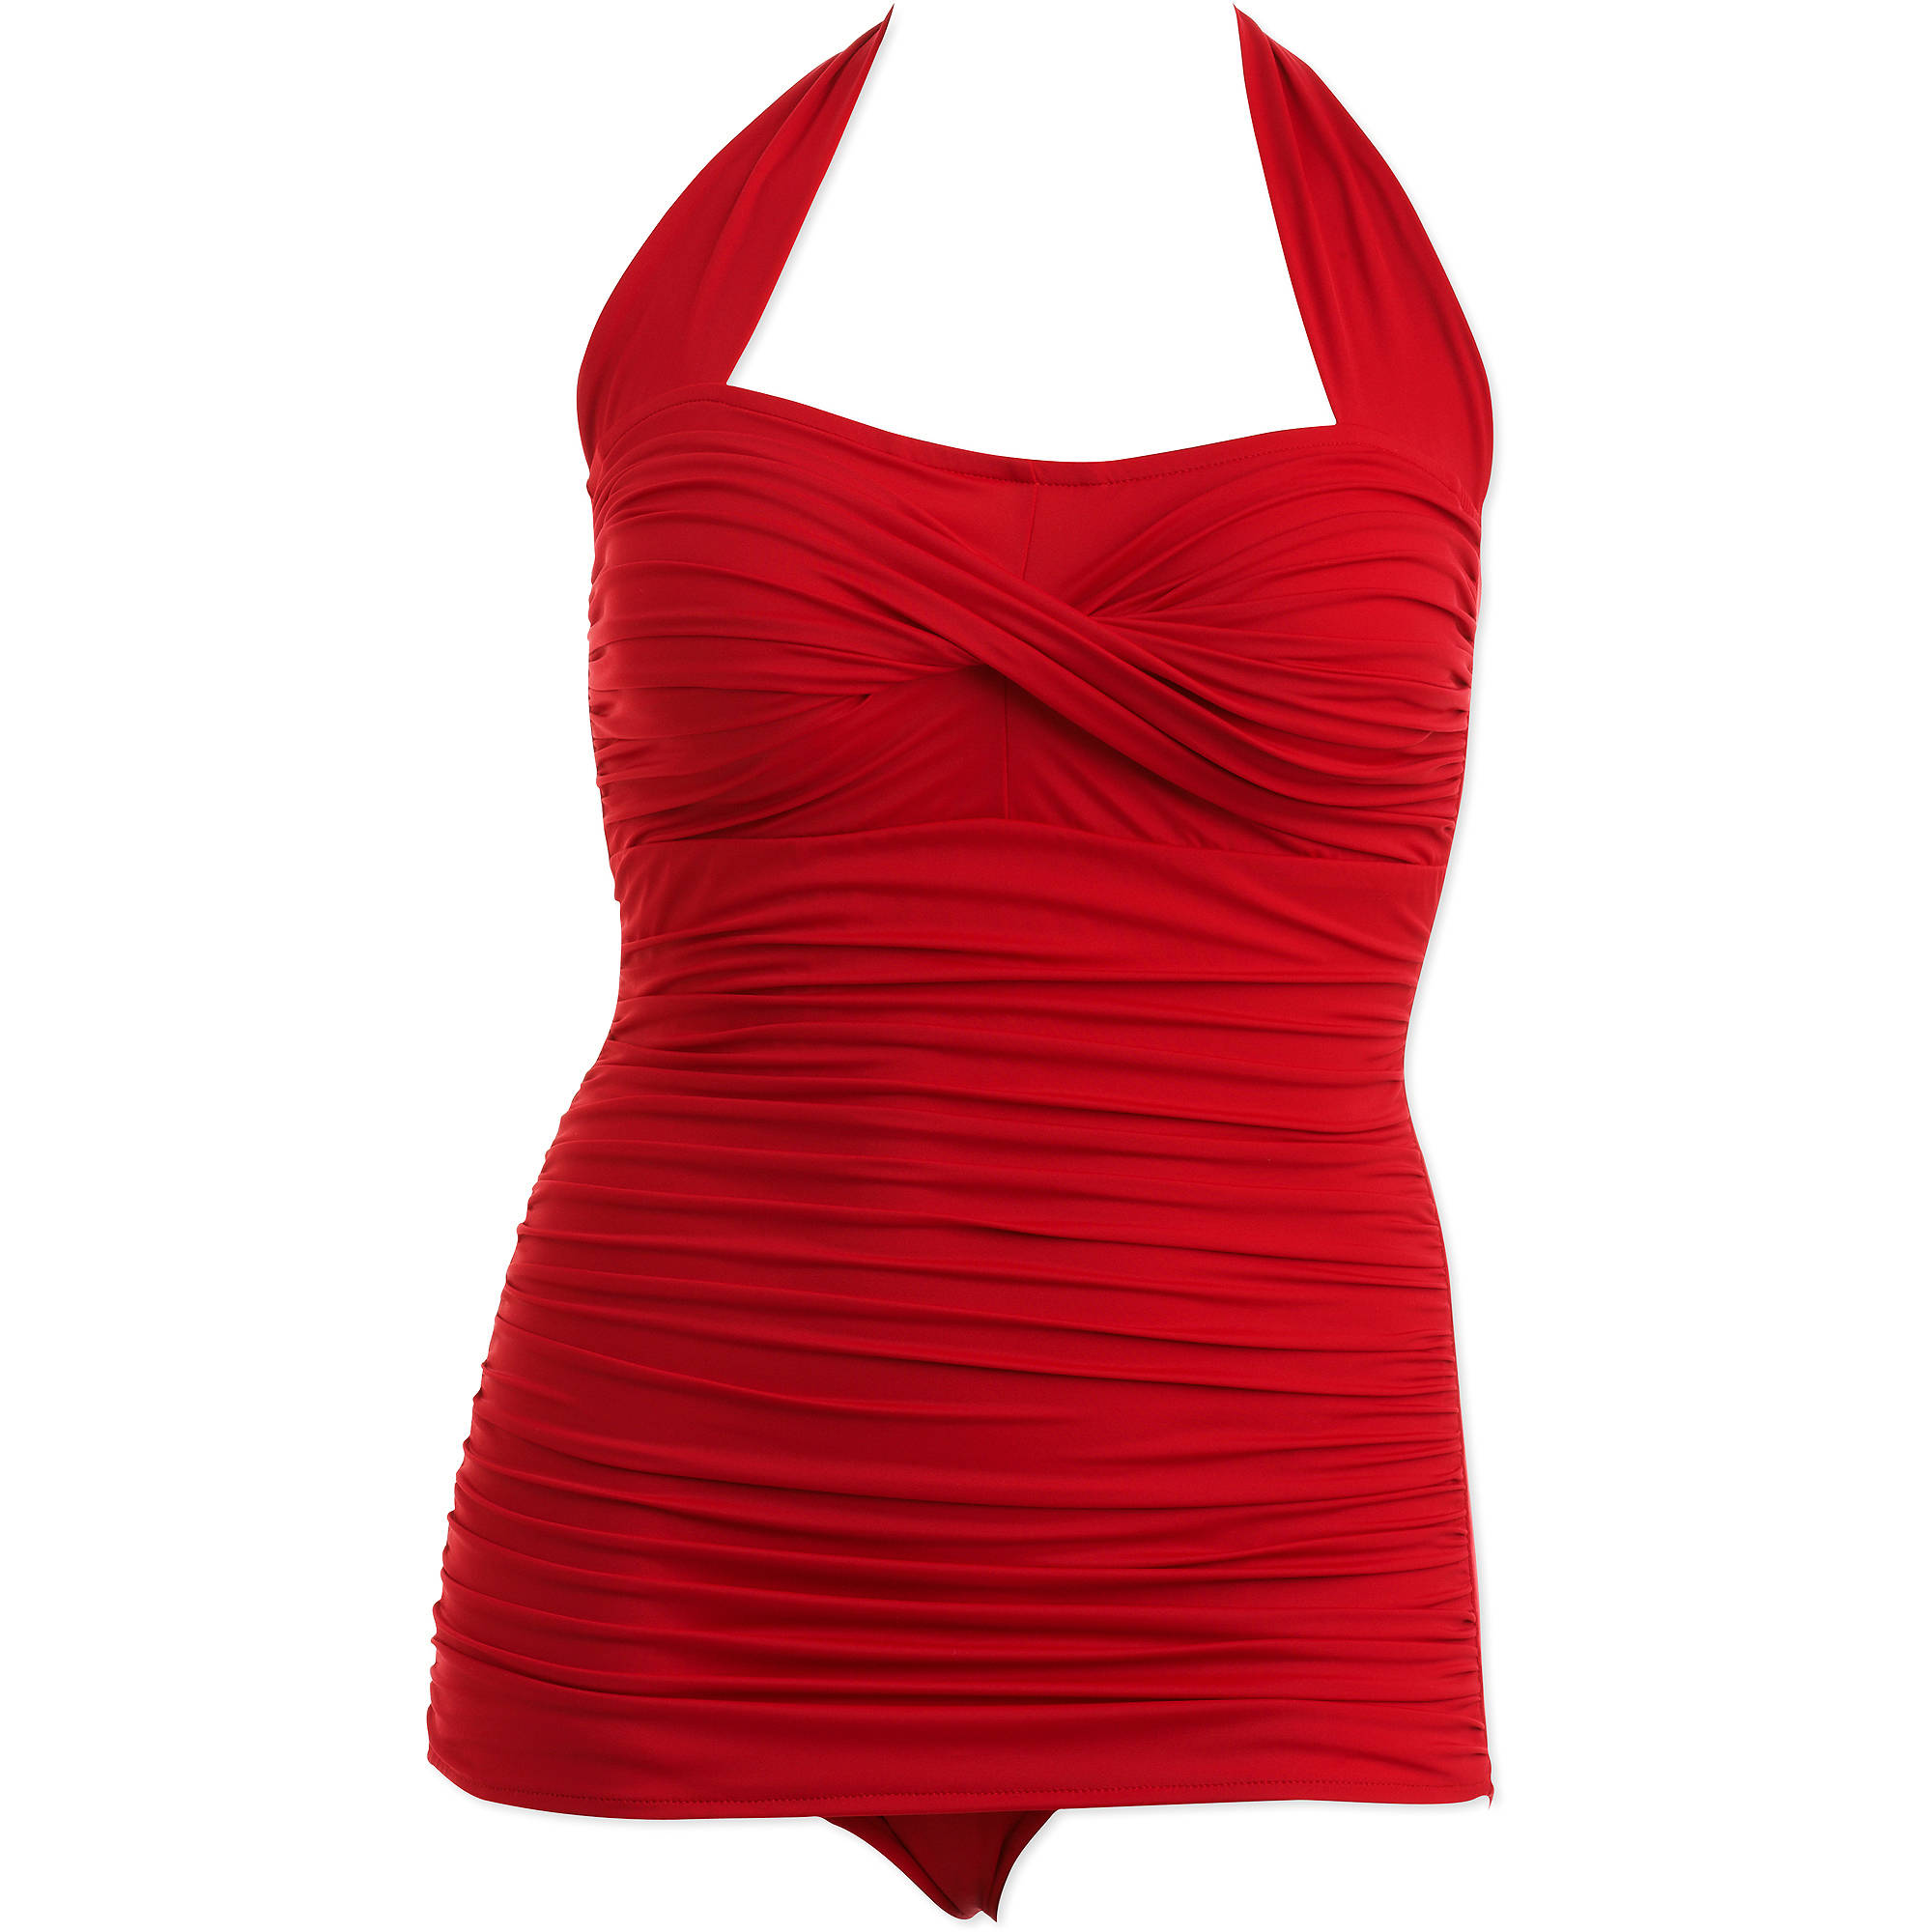 Suddenly Slim by Catalina Women's Plus-Size Slimming Shirred Halter One-Piece Swimsuit